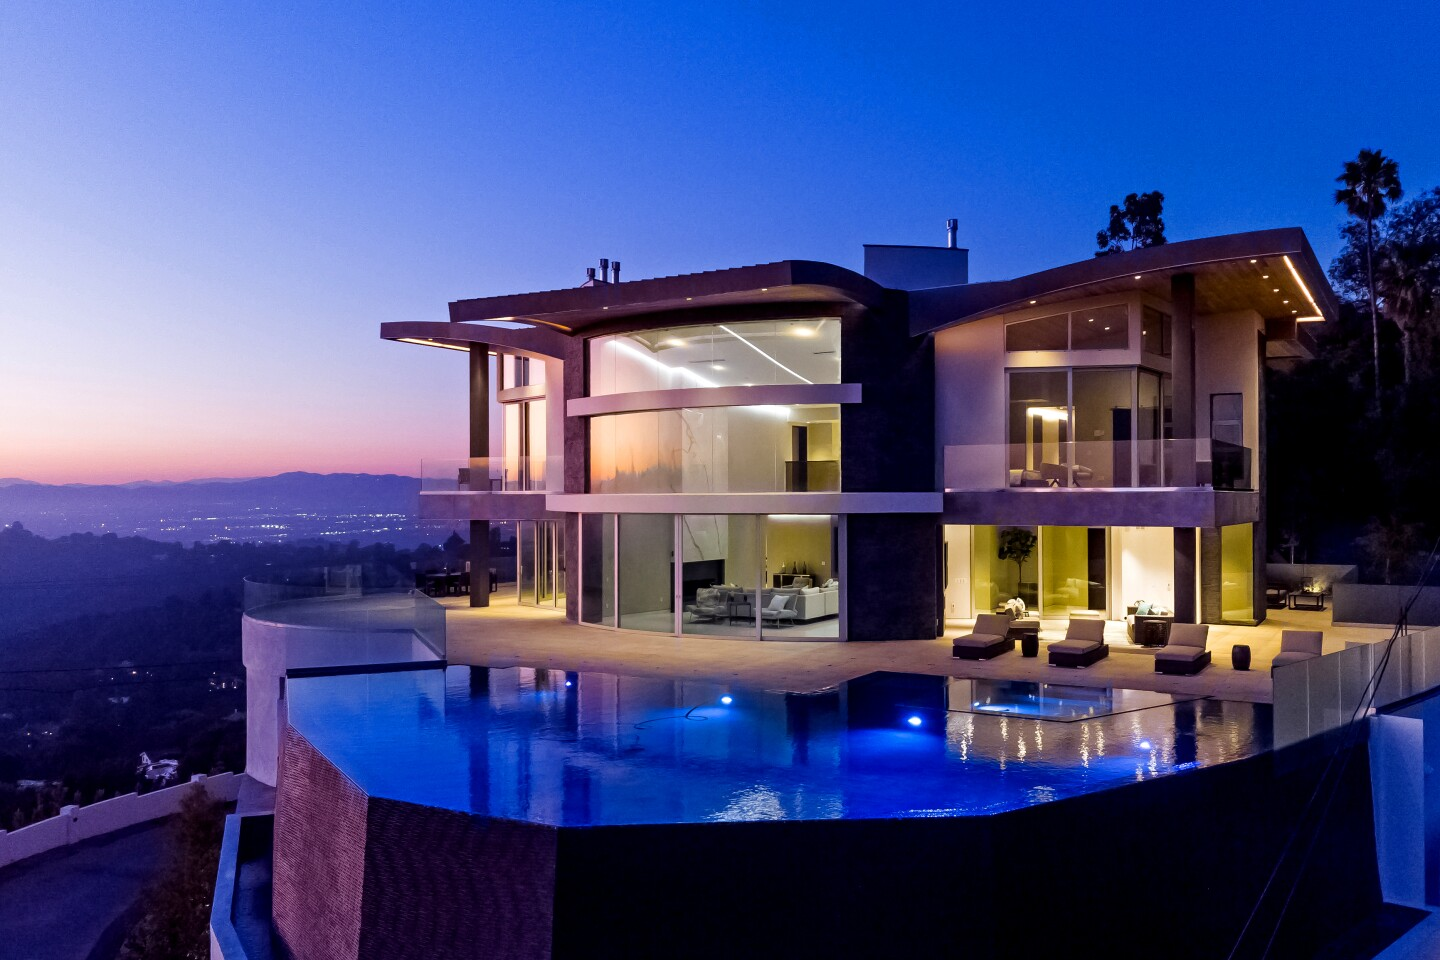 The modern Beverly Crest mansion, designed by architect Jay Vanos, sold to a limited liability company tied to Top Dawg Entertainment founder Anthony Tiffith. Eye-catching from top to bottom, the 13,100-square-foot showplace on Bowmont Drive features white marble slabs, a golf simulator and spa facilities that include a Turkish bath. (Marc Angeles / Unlimited Style Real Estate Photography)